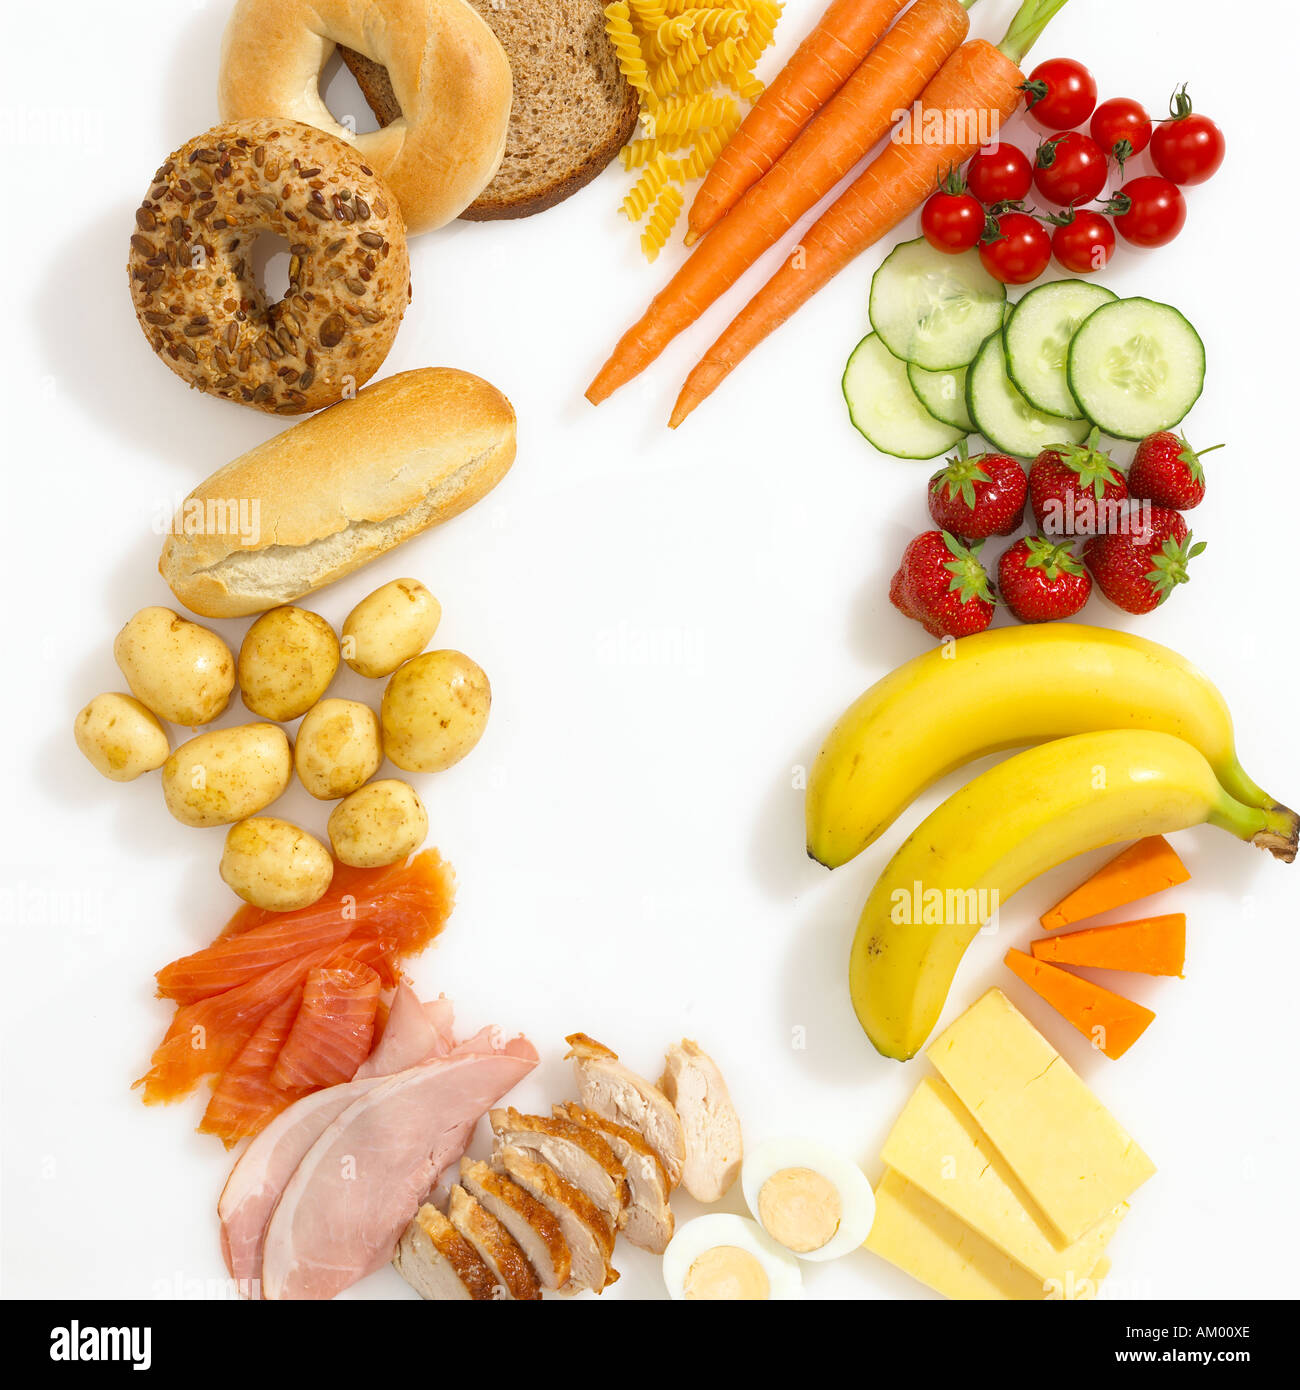 Healthy fruit and vegetables and meat on a white background proportions are for a balanced diet - Stock Image